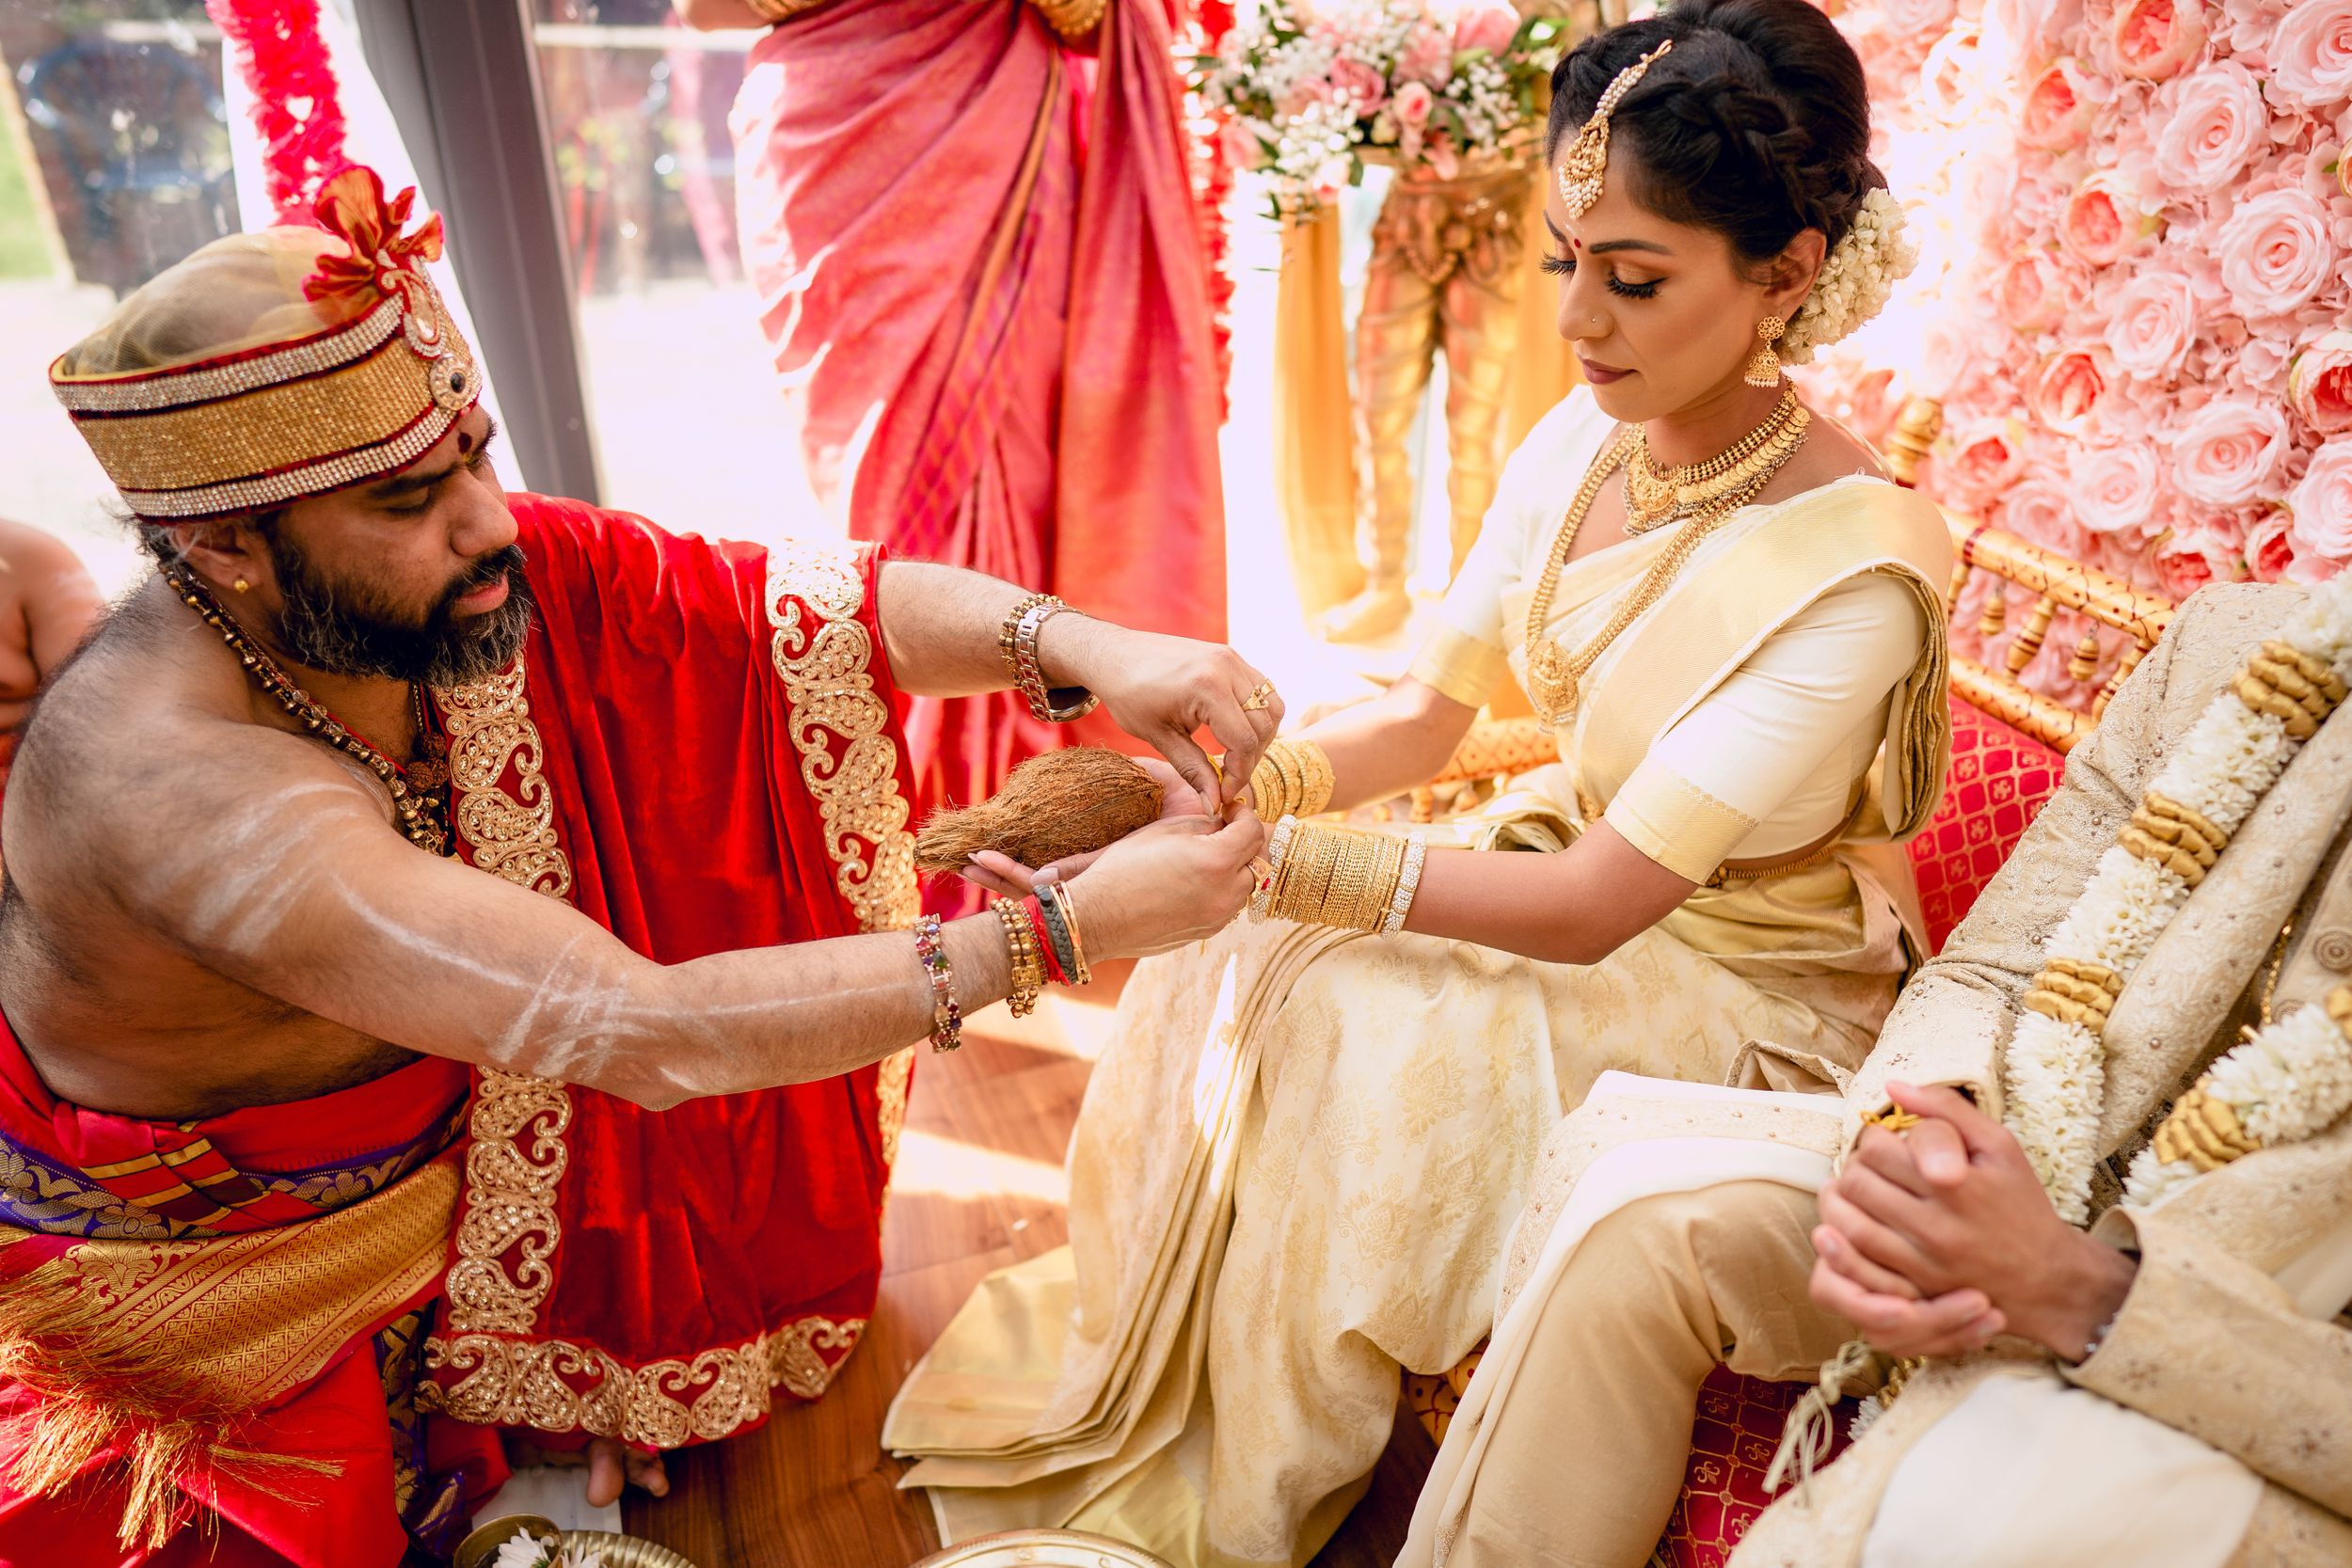 HINDU TAMIL WEDDING PHOTOGRAPHY BY TAMIL WEDDING PHOTOGRAPHER SHERAZ KHWAJA